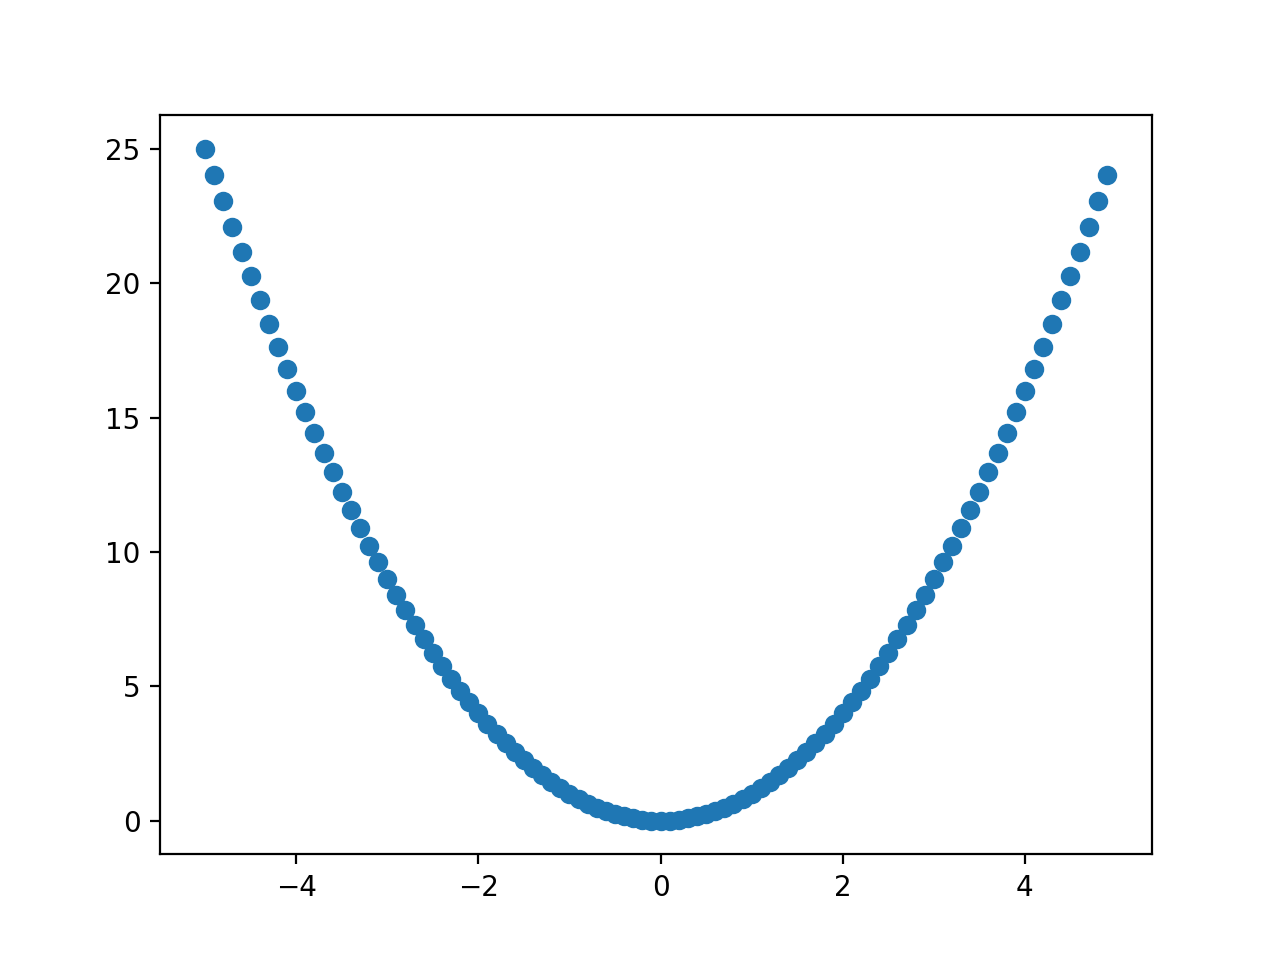 Scatter Plot of a One-Dimensional Function